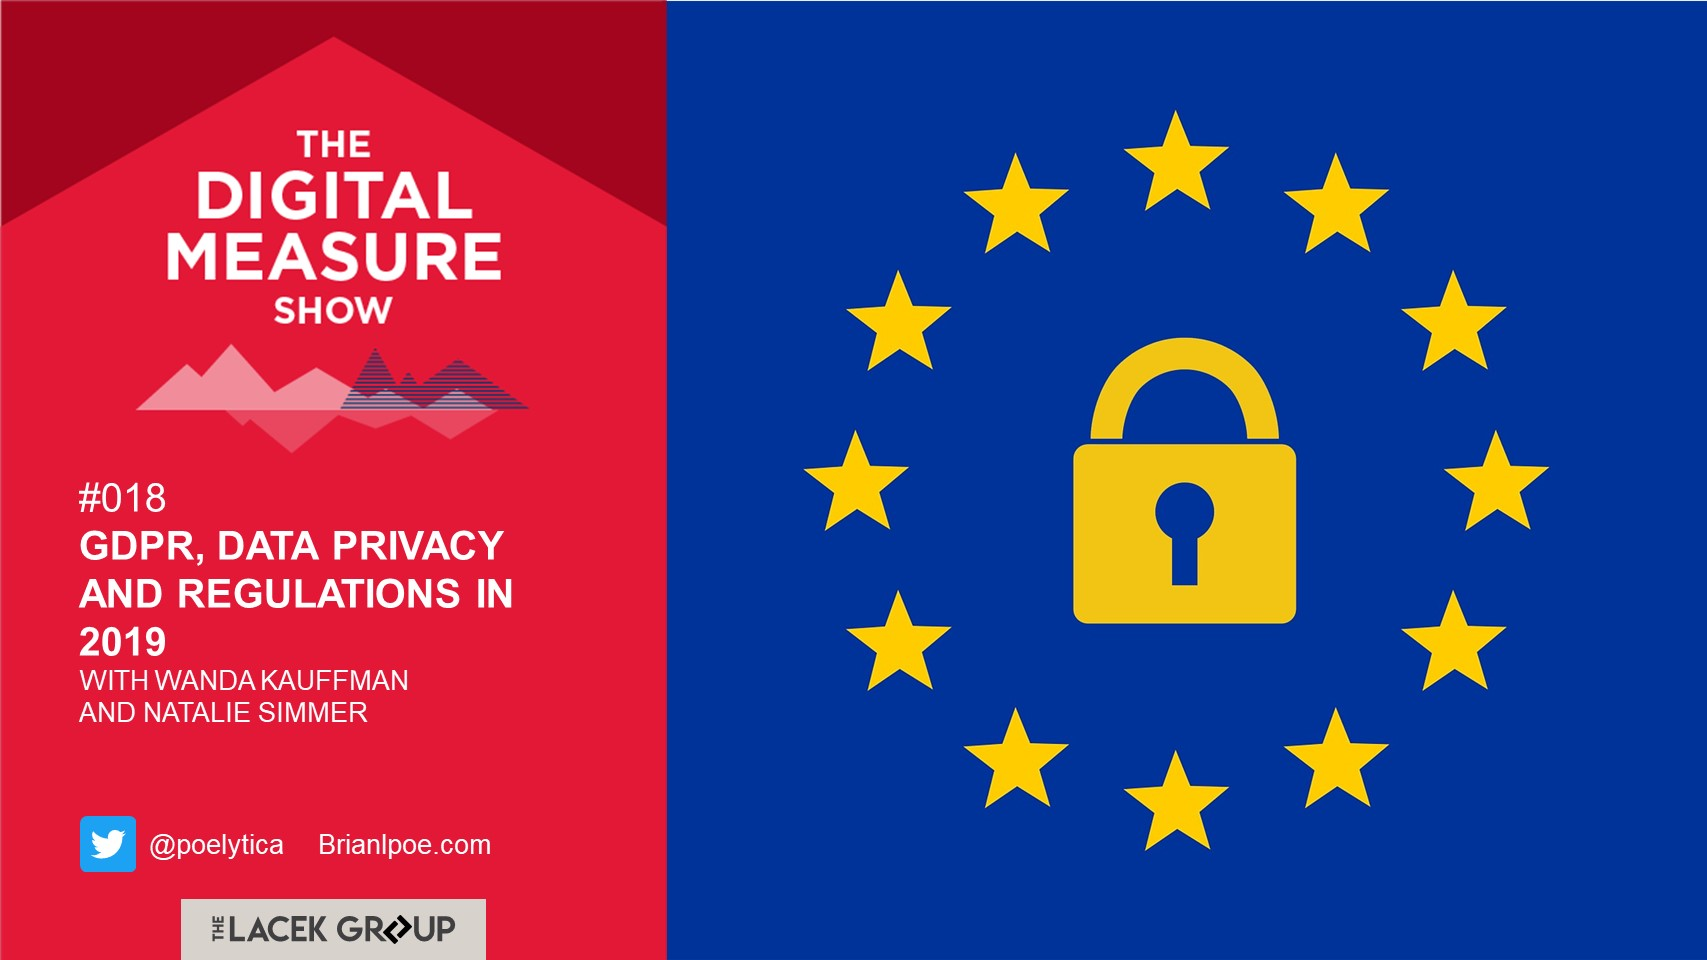 GDPR, Data Privacy and Regulations in 2019.jpg